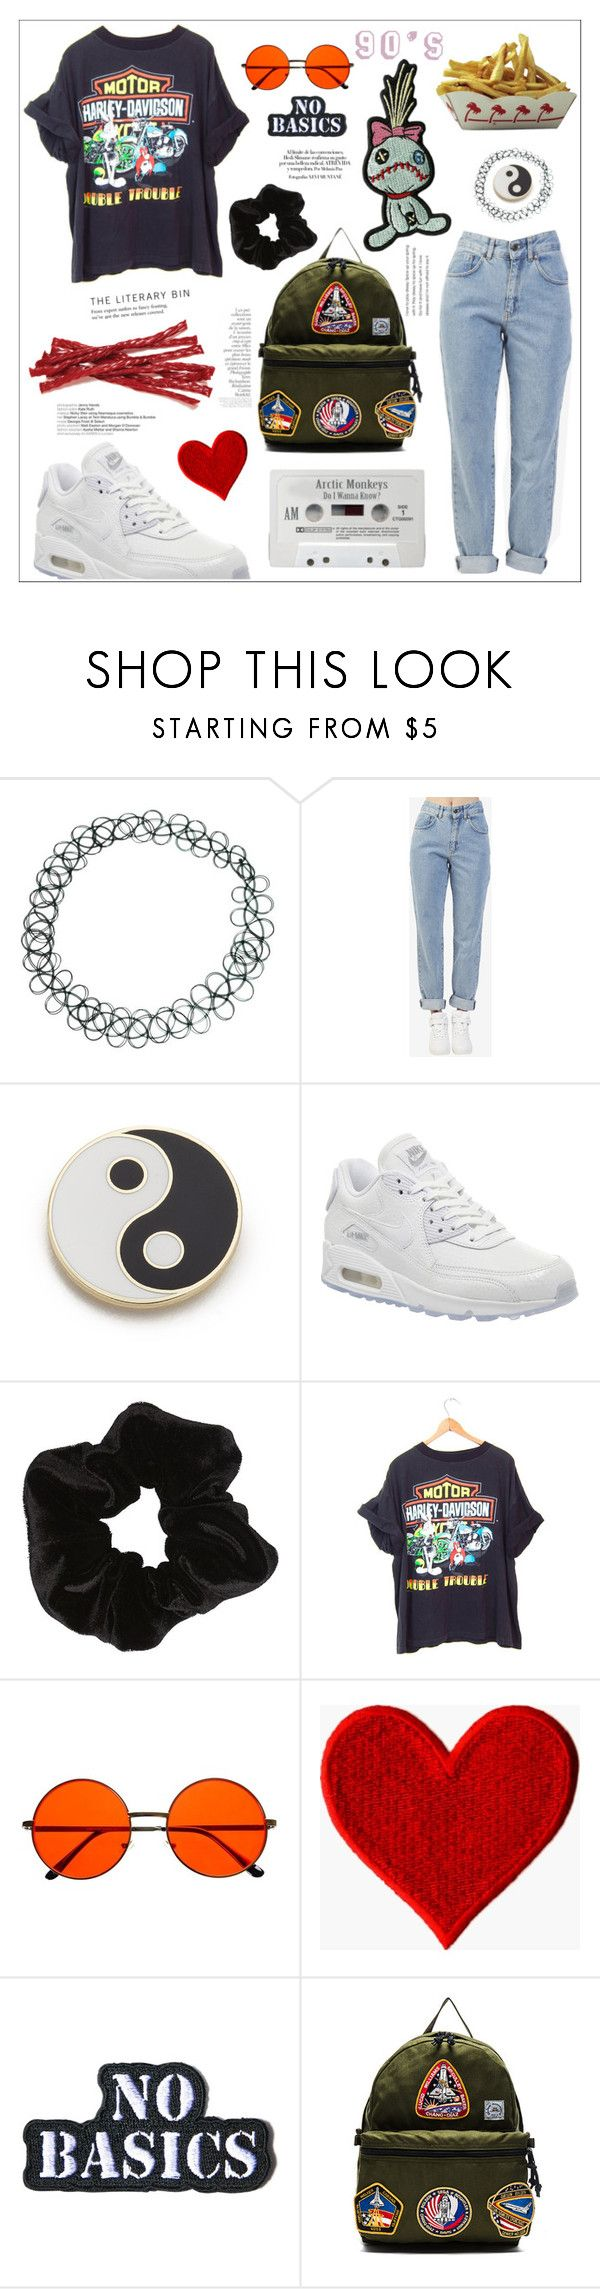 """90's"" by amanda-alyssa-montalvo ❤ liked on Polyvore featuring ASOS, The Ragged Priest, Georgia Perry, NIKE, Harley-Davidson, Hollywood Mirror, Epperson Mountaineering, Hot Topic and By Terry"